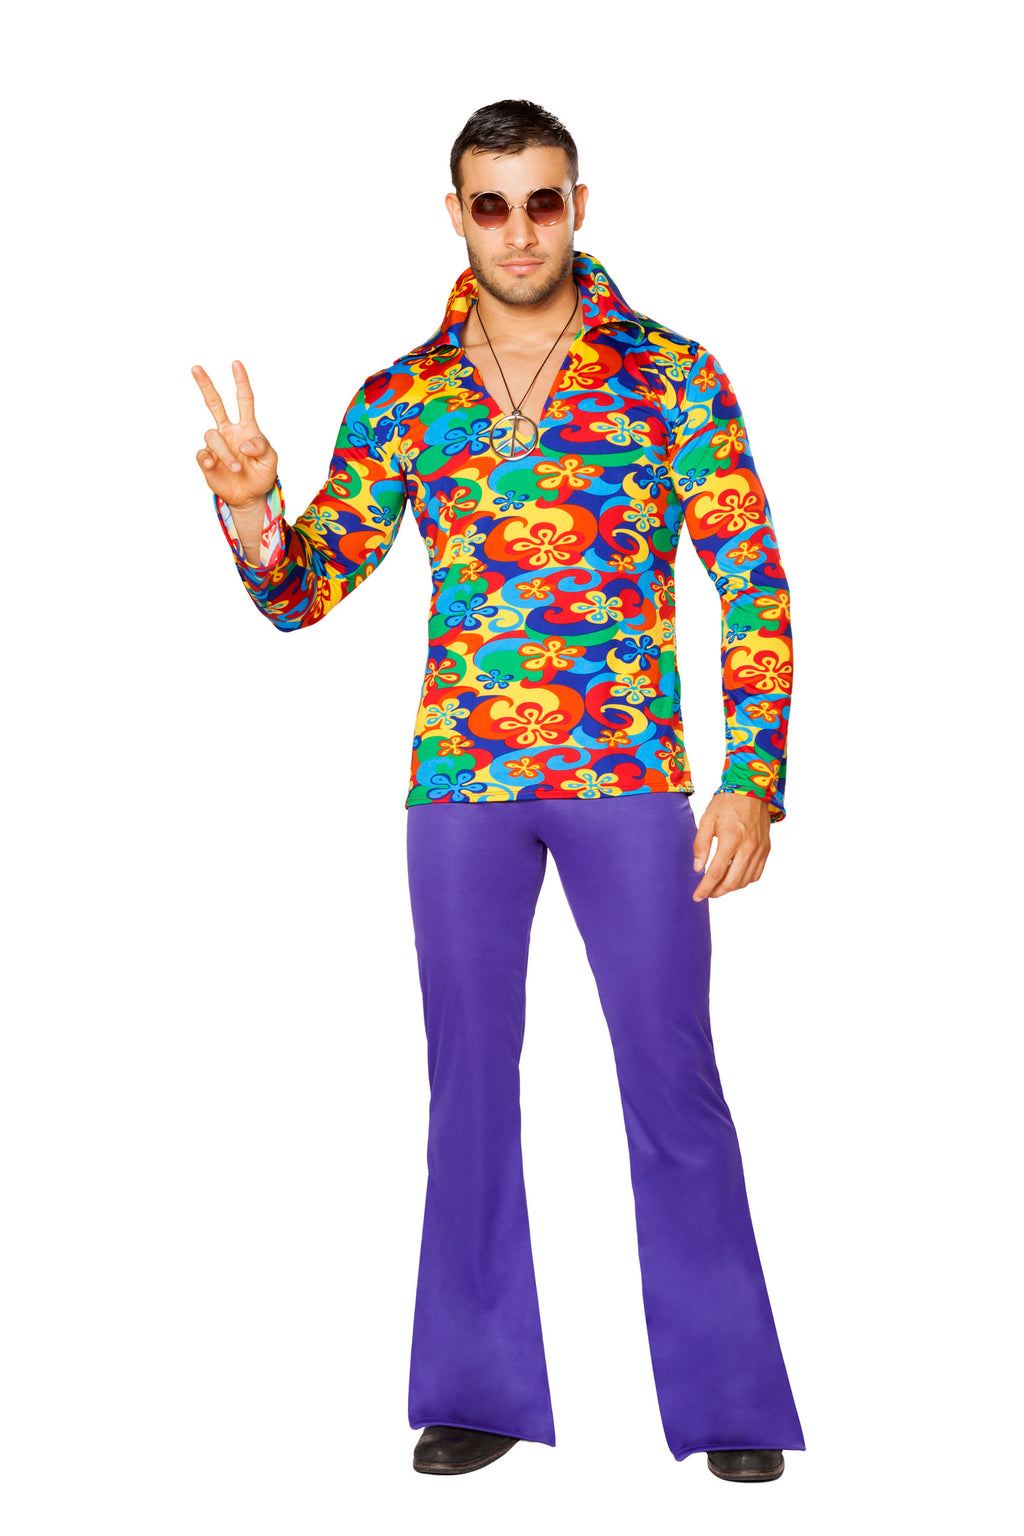 2-Piece-Hippie-Flower-Dude-Groovy-Top-&-Bell-Bottoms-Party-Costume